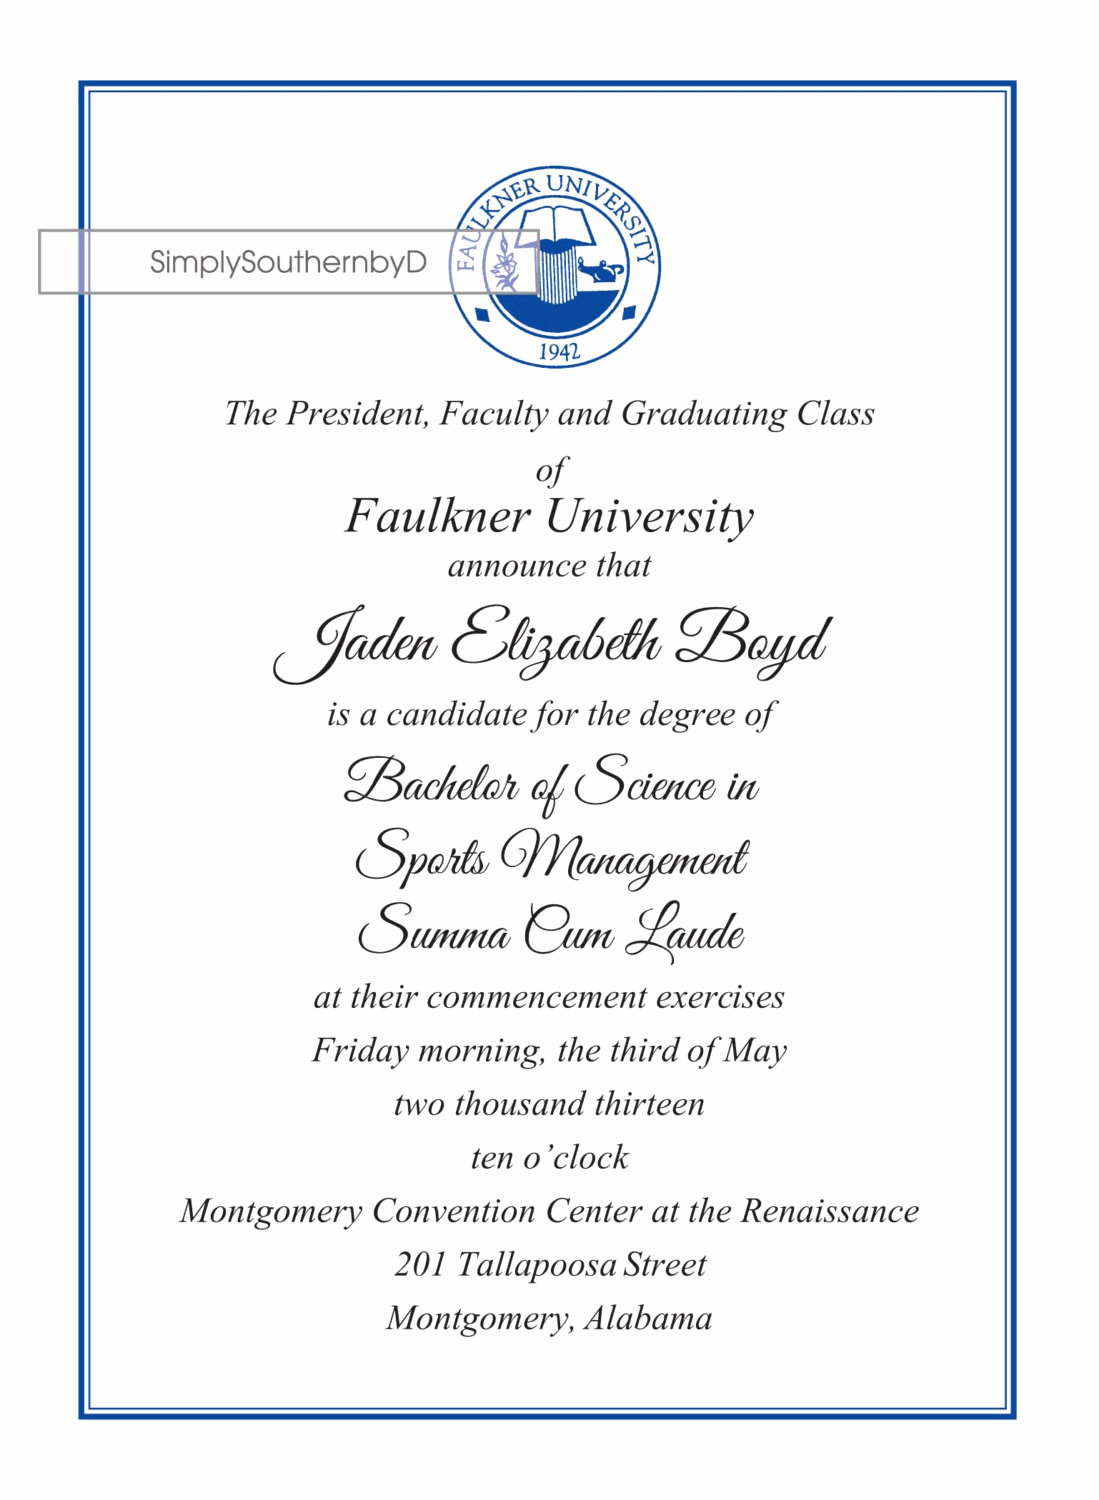 Graduation Commencement Invitation Wording Best Of College Graduation Announcements by Simplysouthernbyd On Etsy